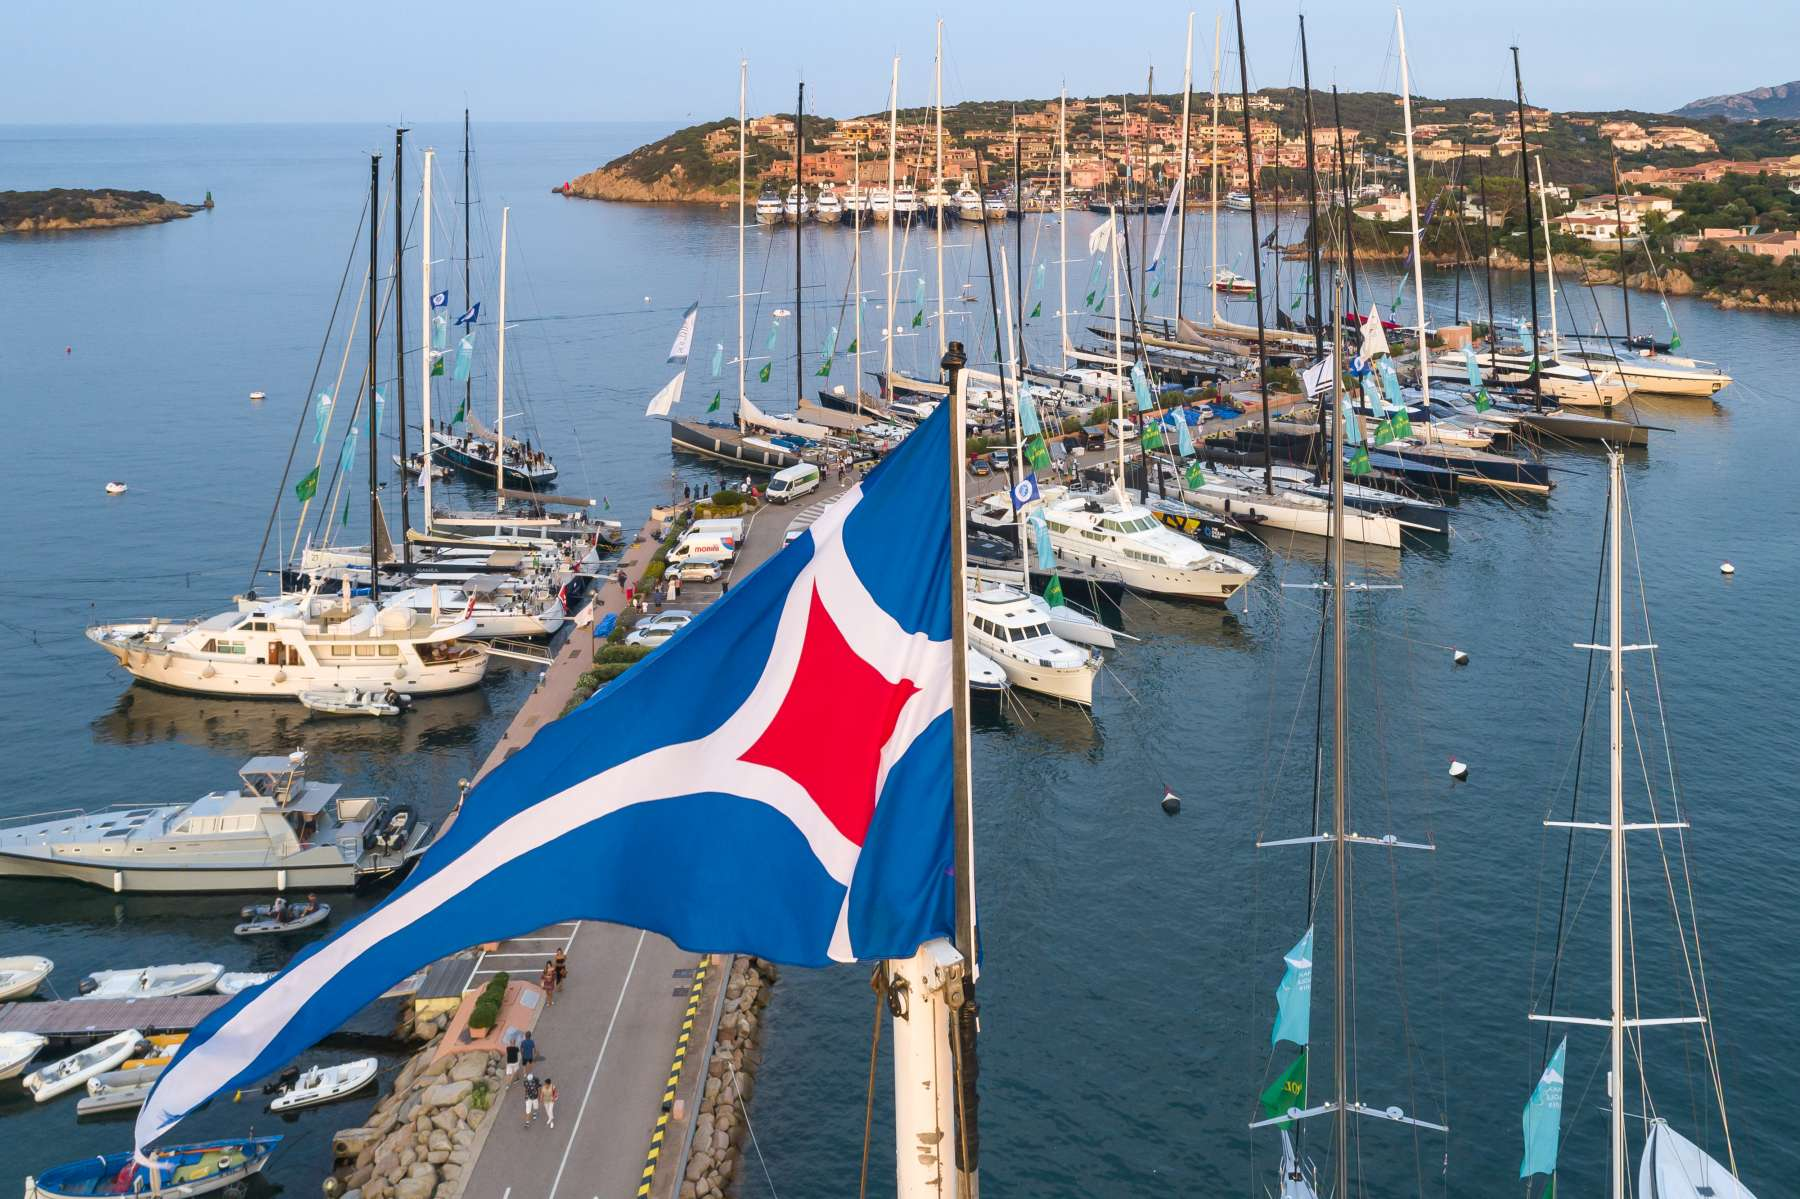 YCCS reopening safely - NEWS - Yacht Club Costa Smeralda